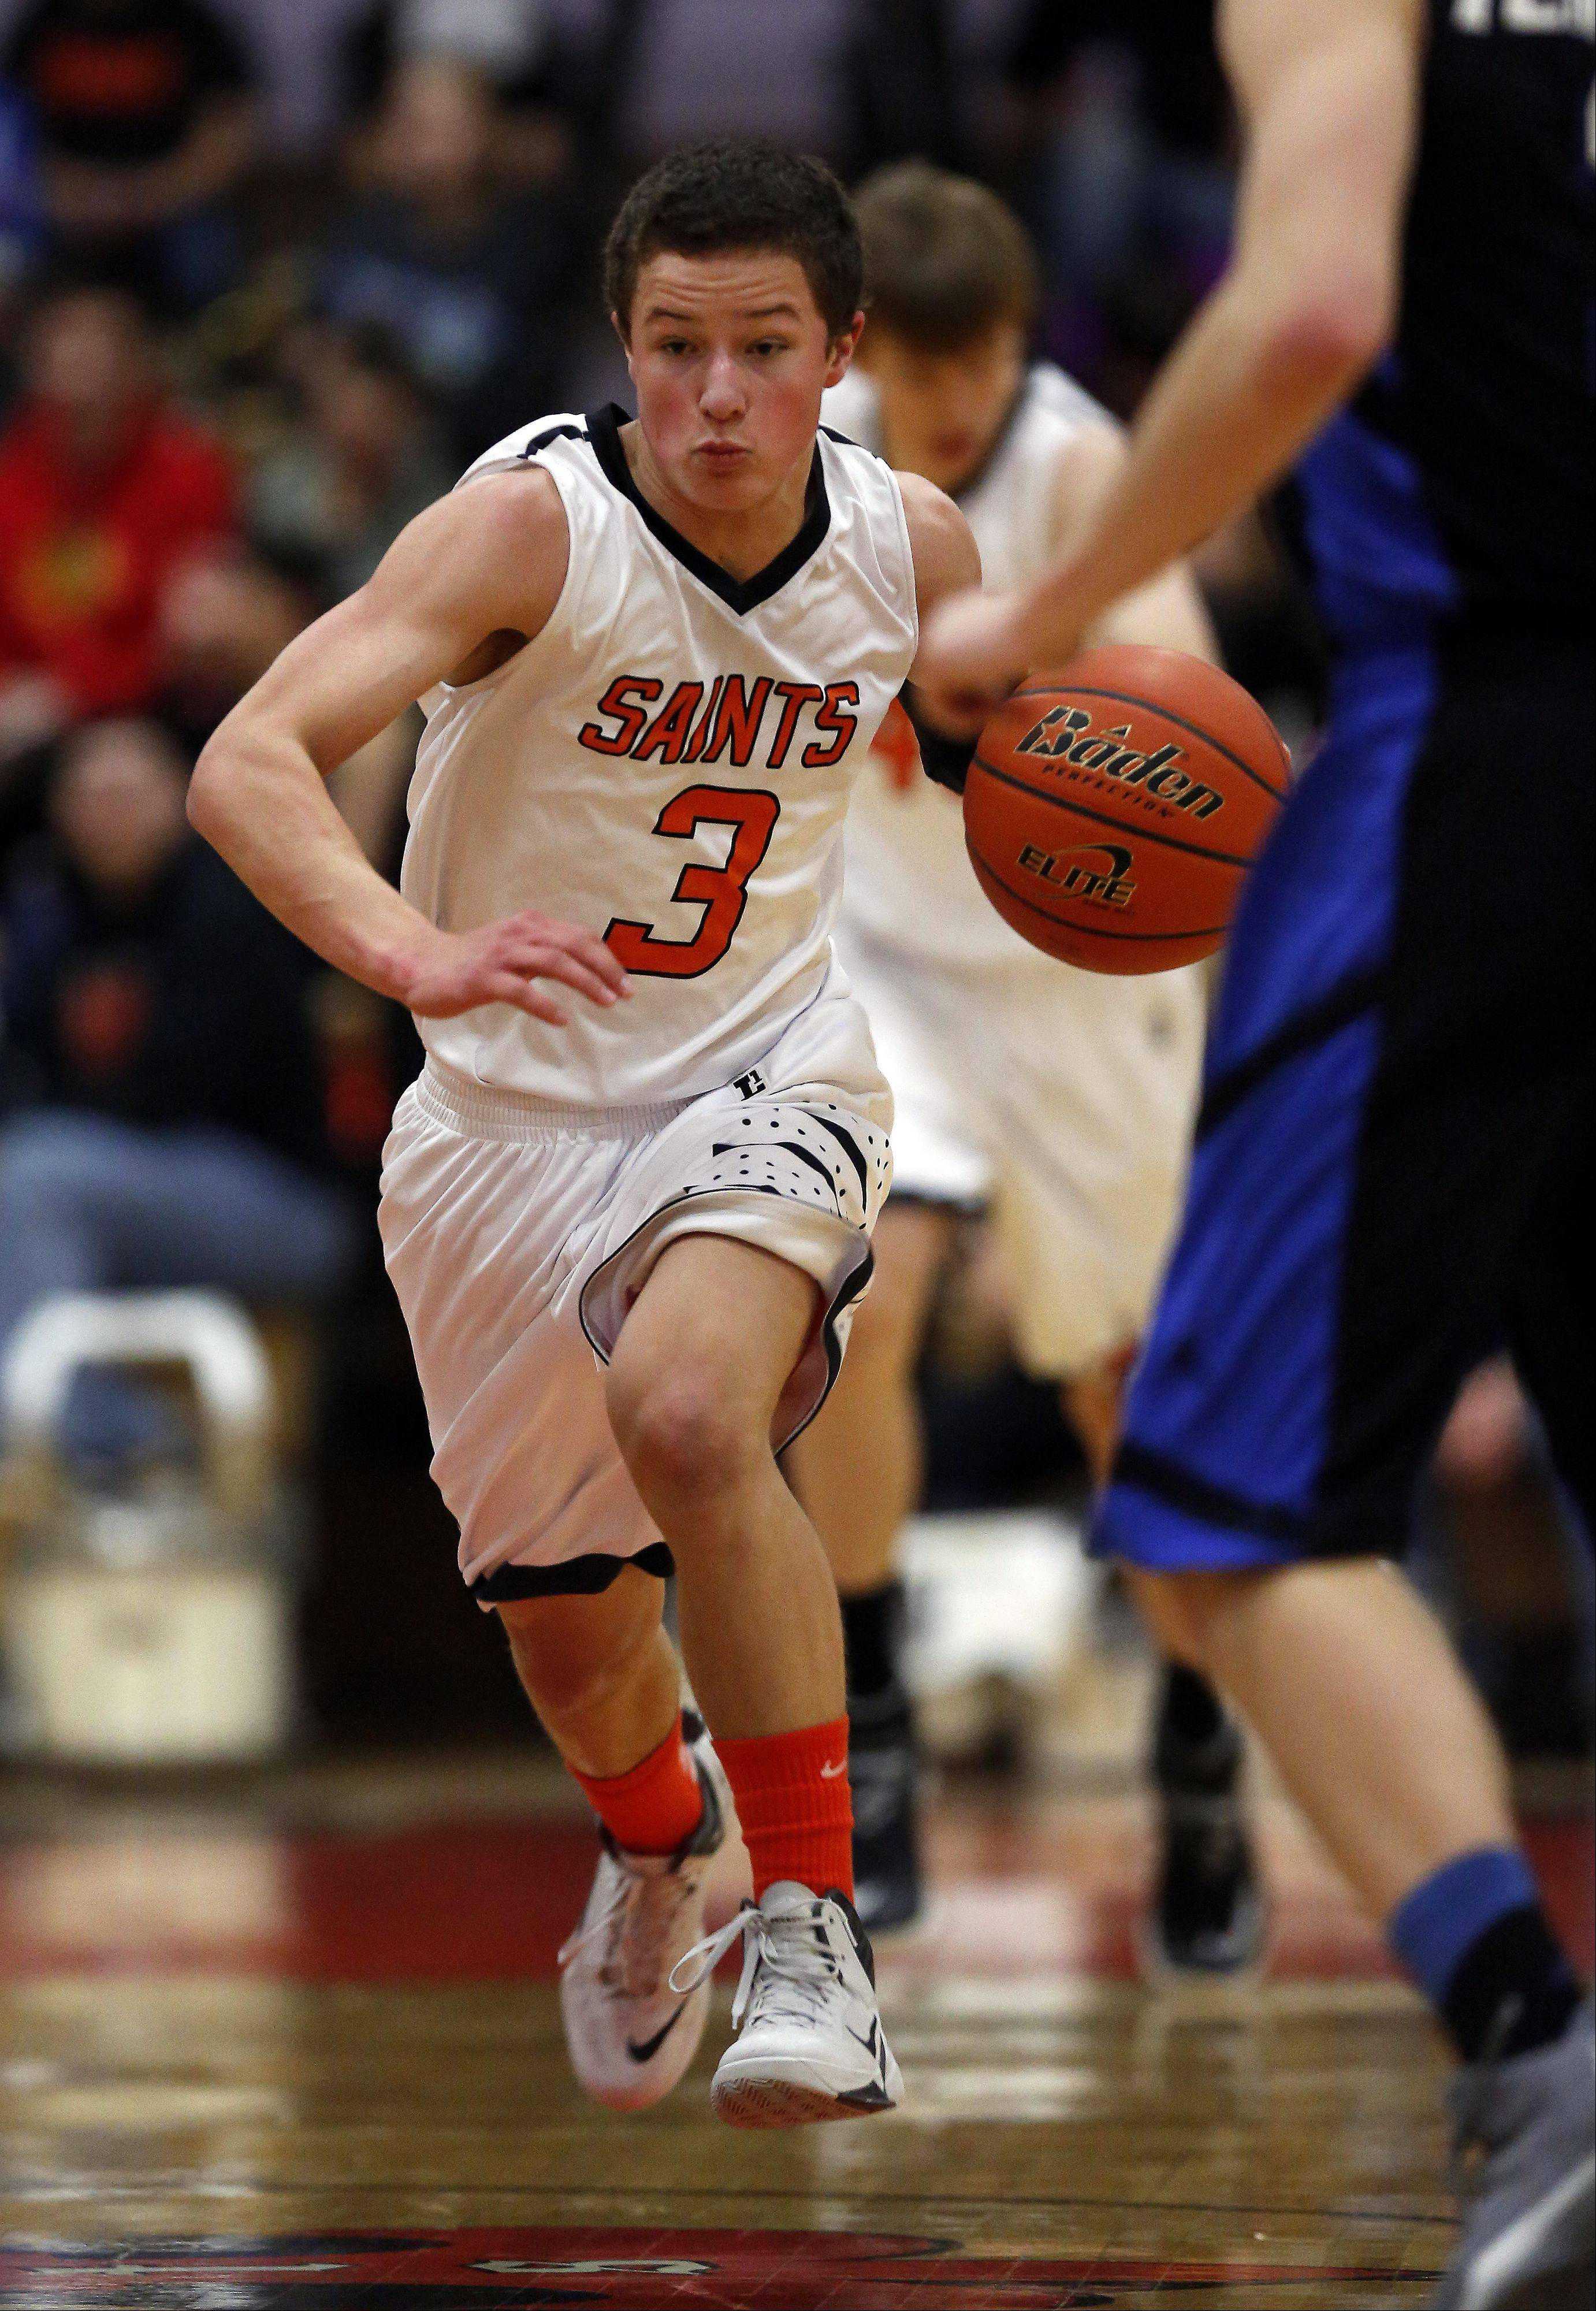 St. Charles East's Cole Gentry, 3, brings the ball up court against Geneva during boys Basketball Saturday.